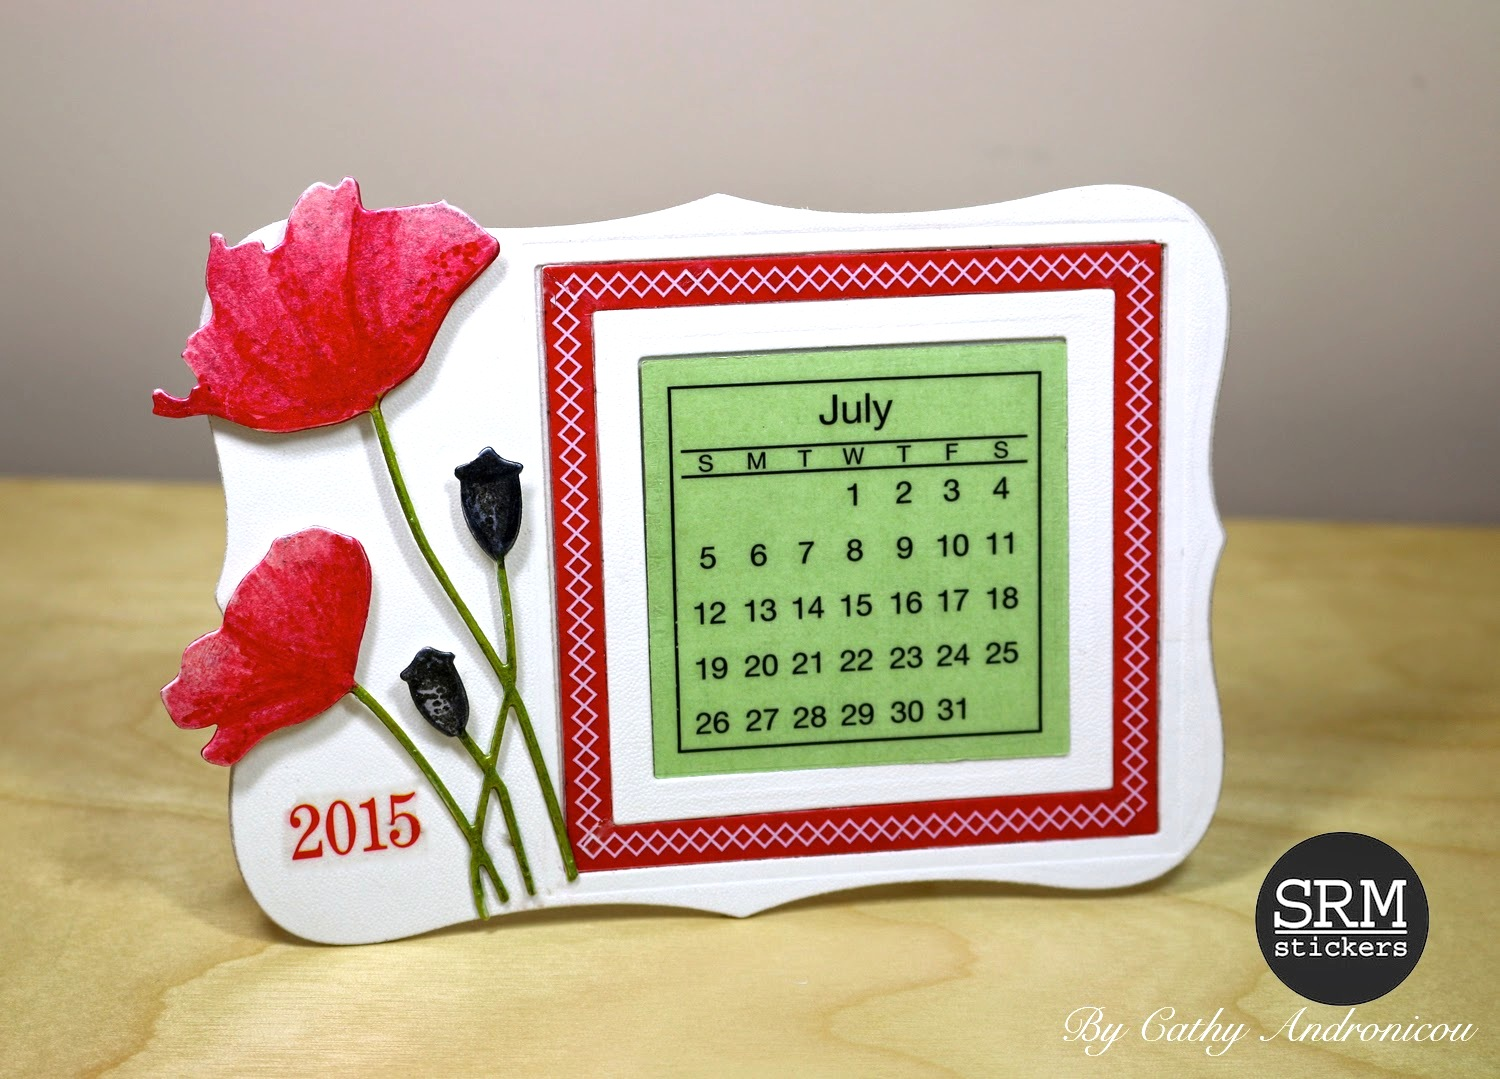 Calendar Craft Projects : Srm stickers poppies mini calendar tutorial by cathy a